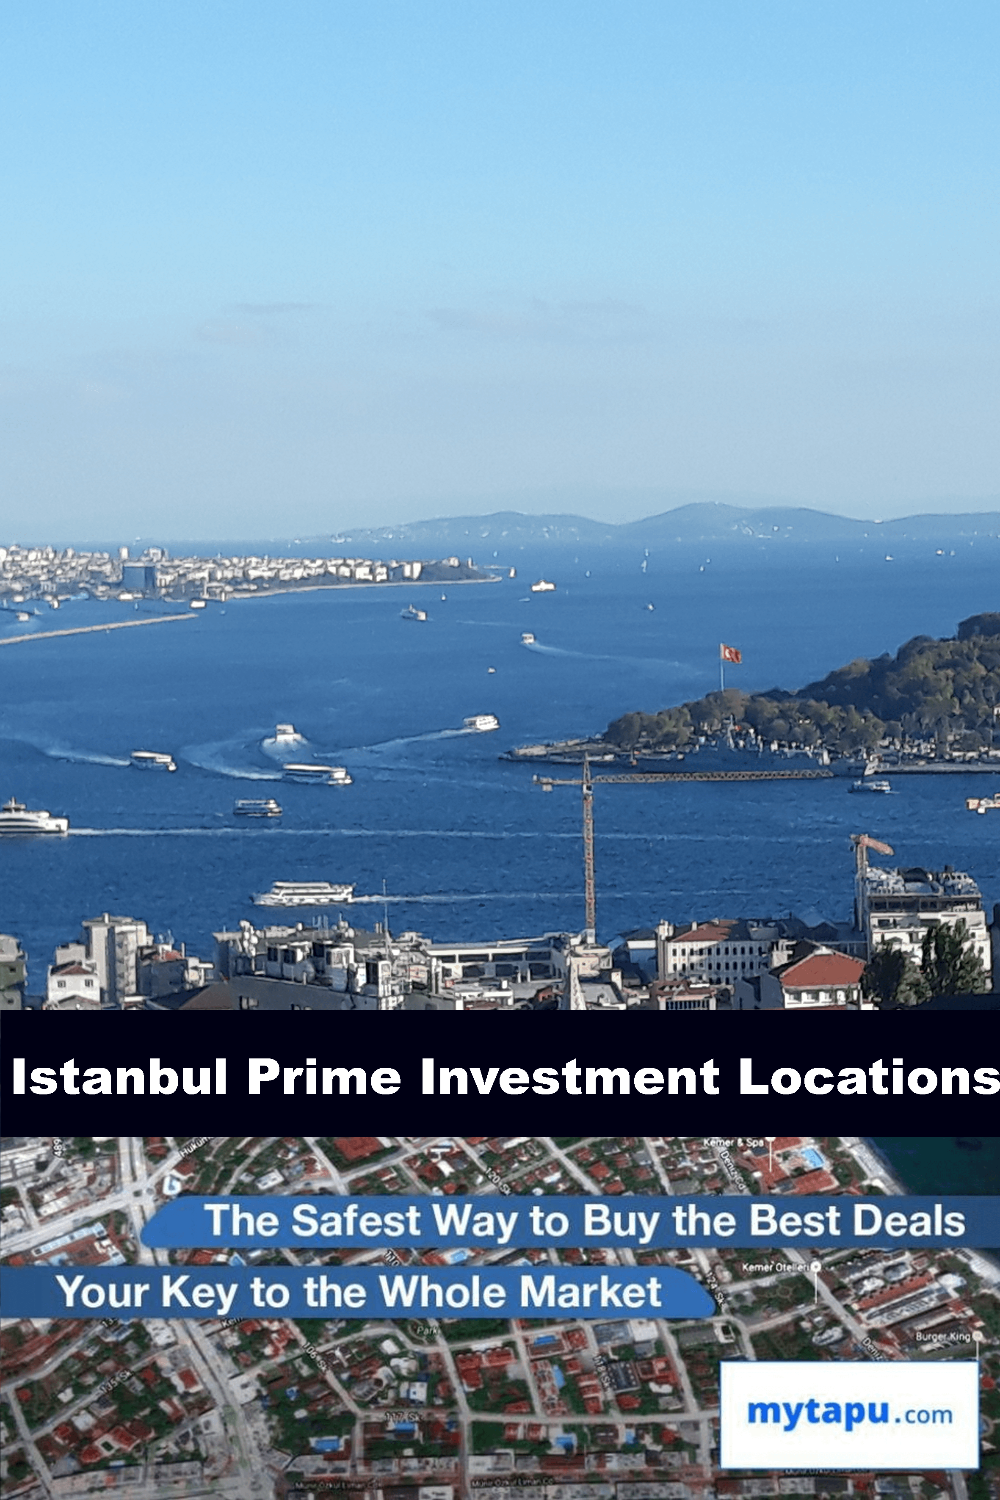 Property for Investment in Prime Central Istanbul Locations